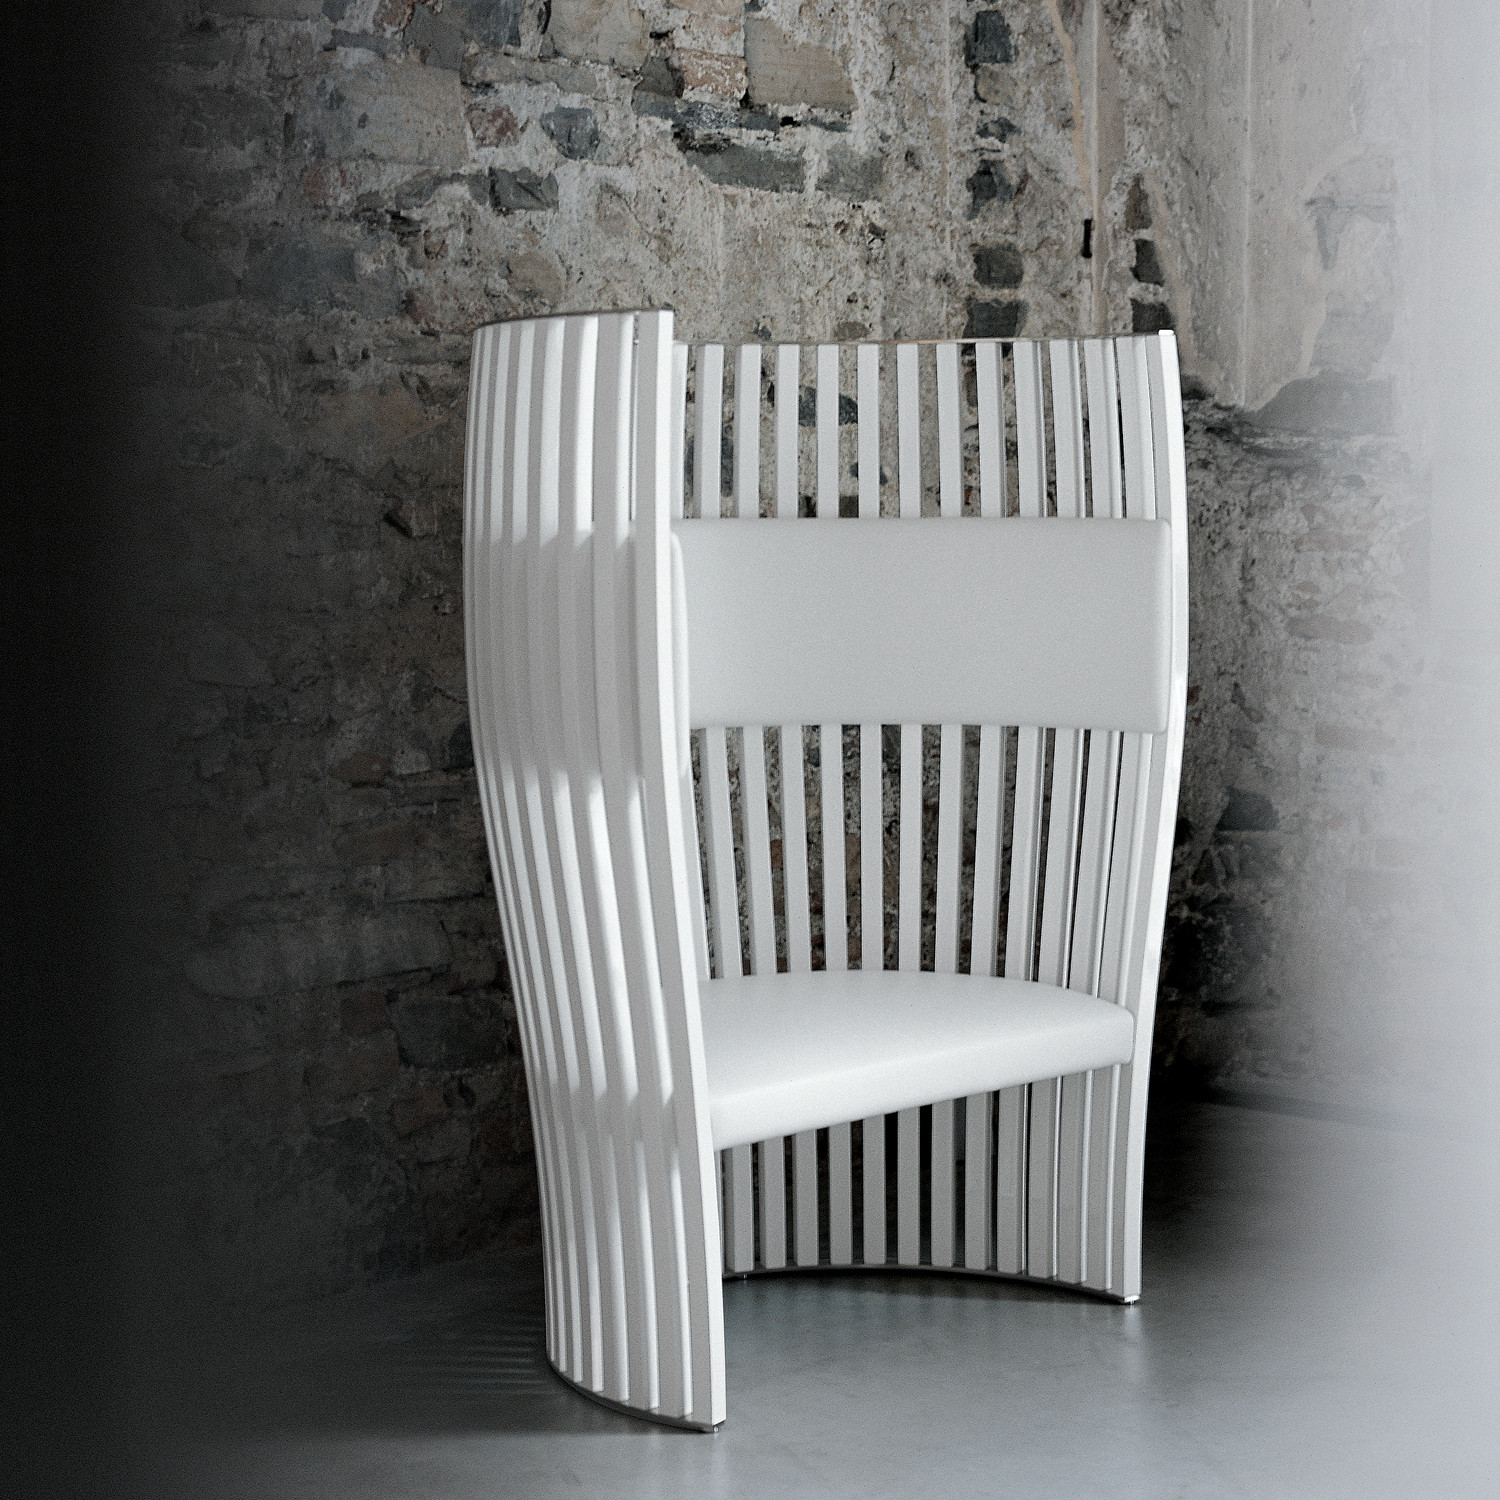 SouthBeach Chair by Tacchini